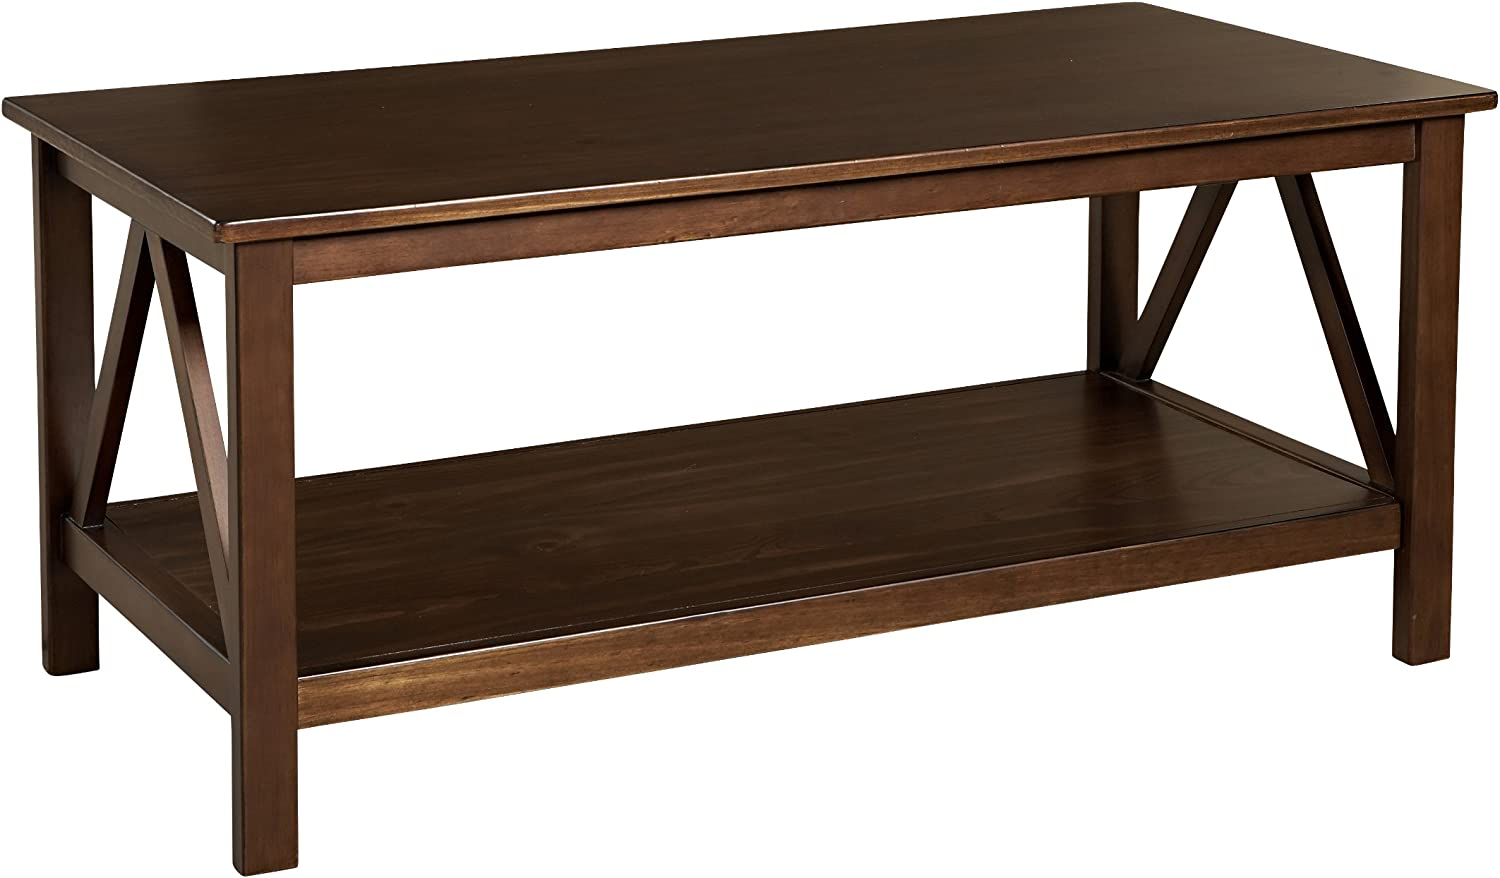 "Linon Home Dcor Linon Home Decor Titian Coffee Table, 44.02"" w x 21.97"" d x 20"" h, Antique Tobacco"